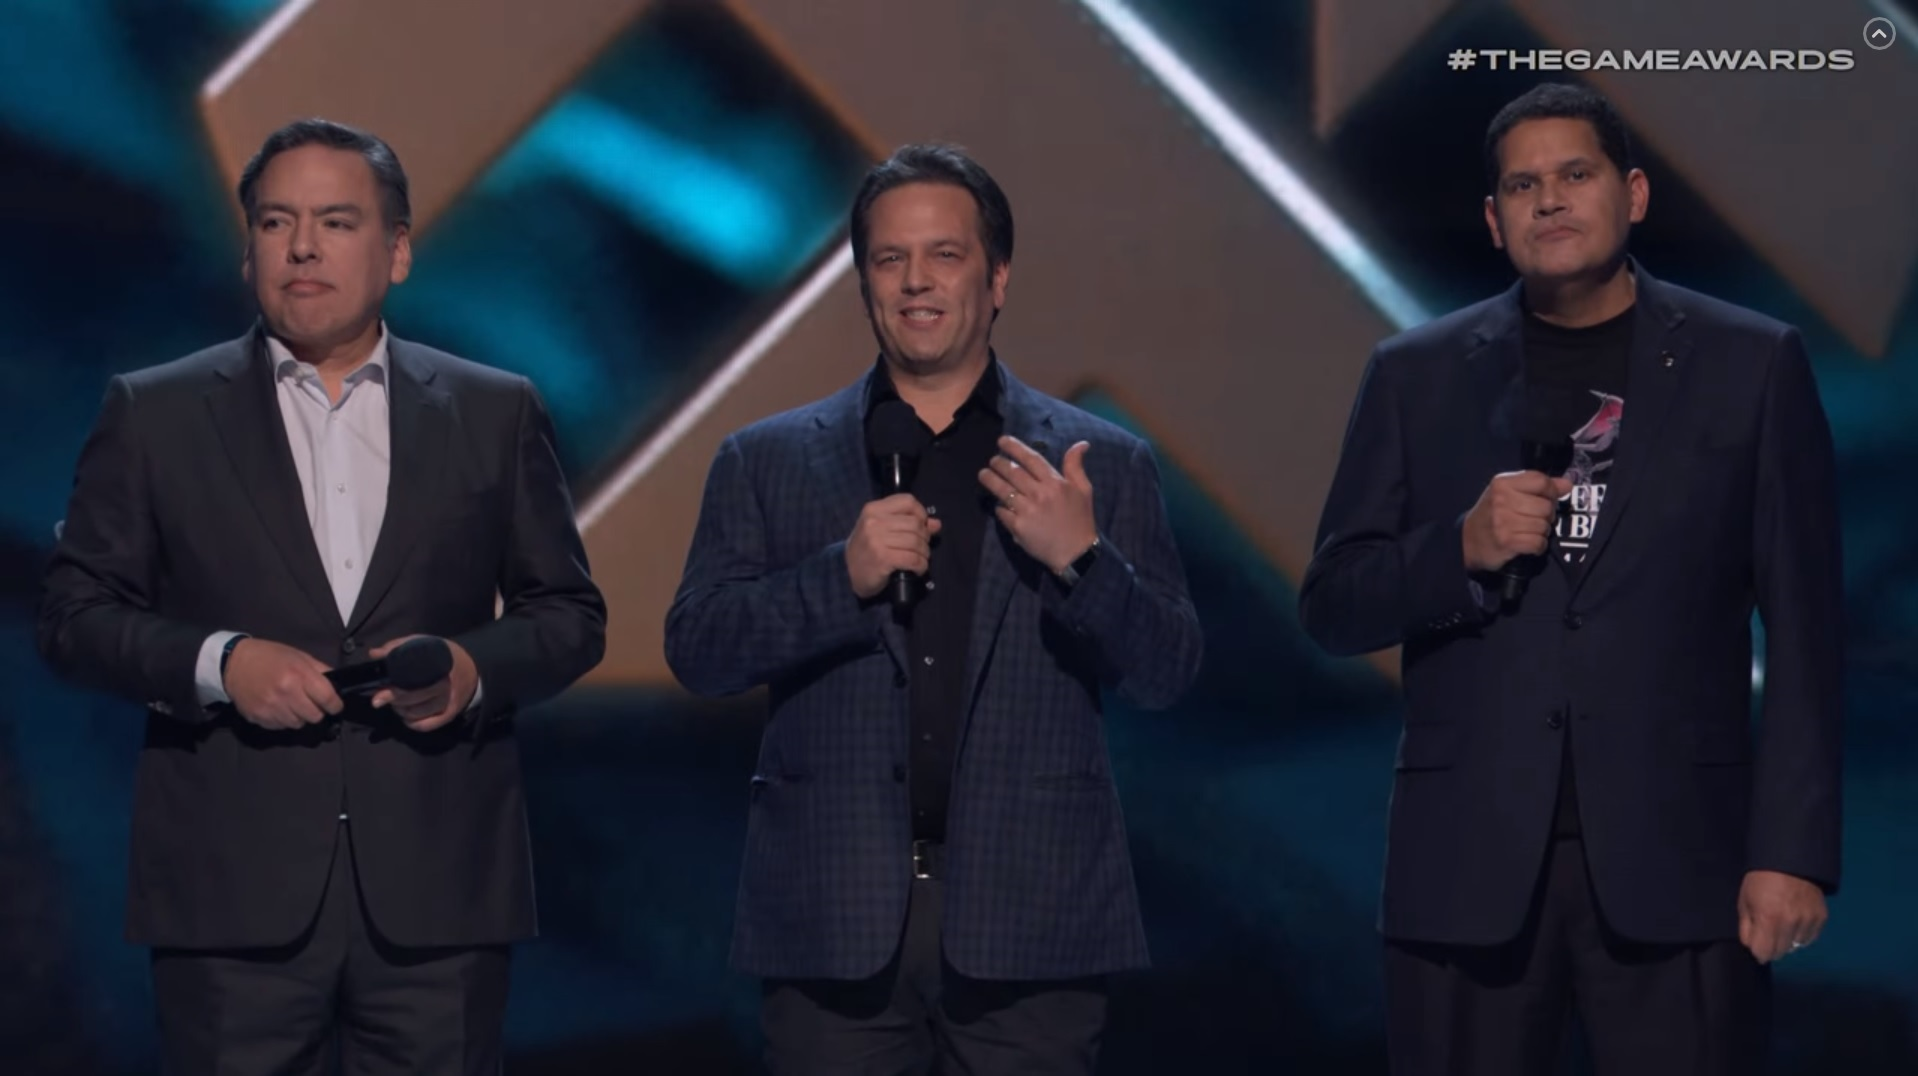 Hey, that's three important guys on stage! screenshot